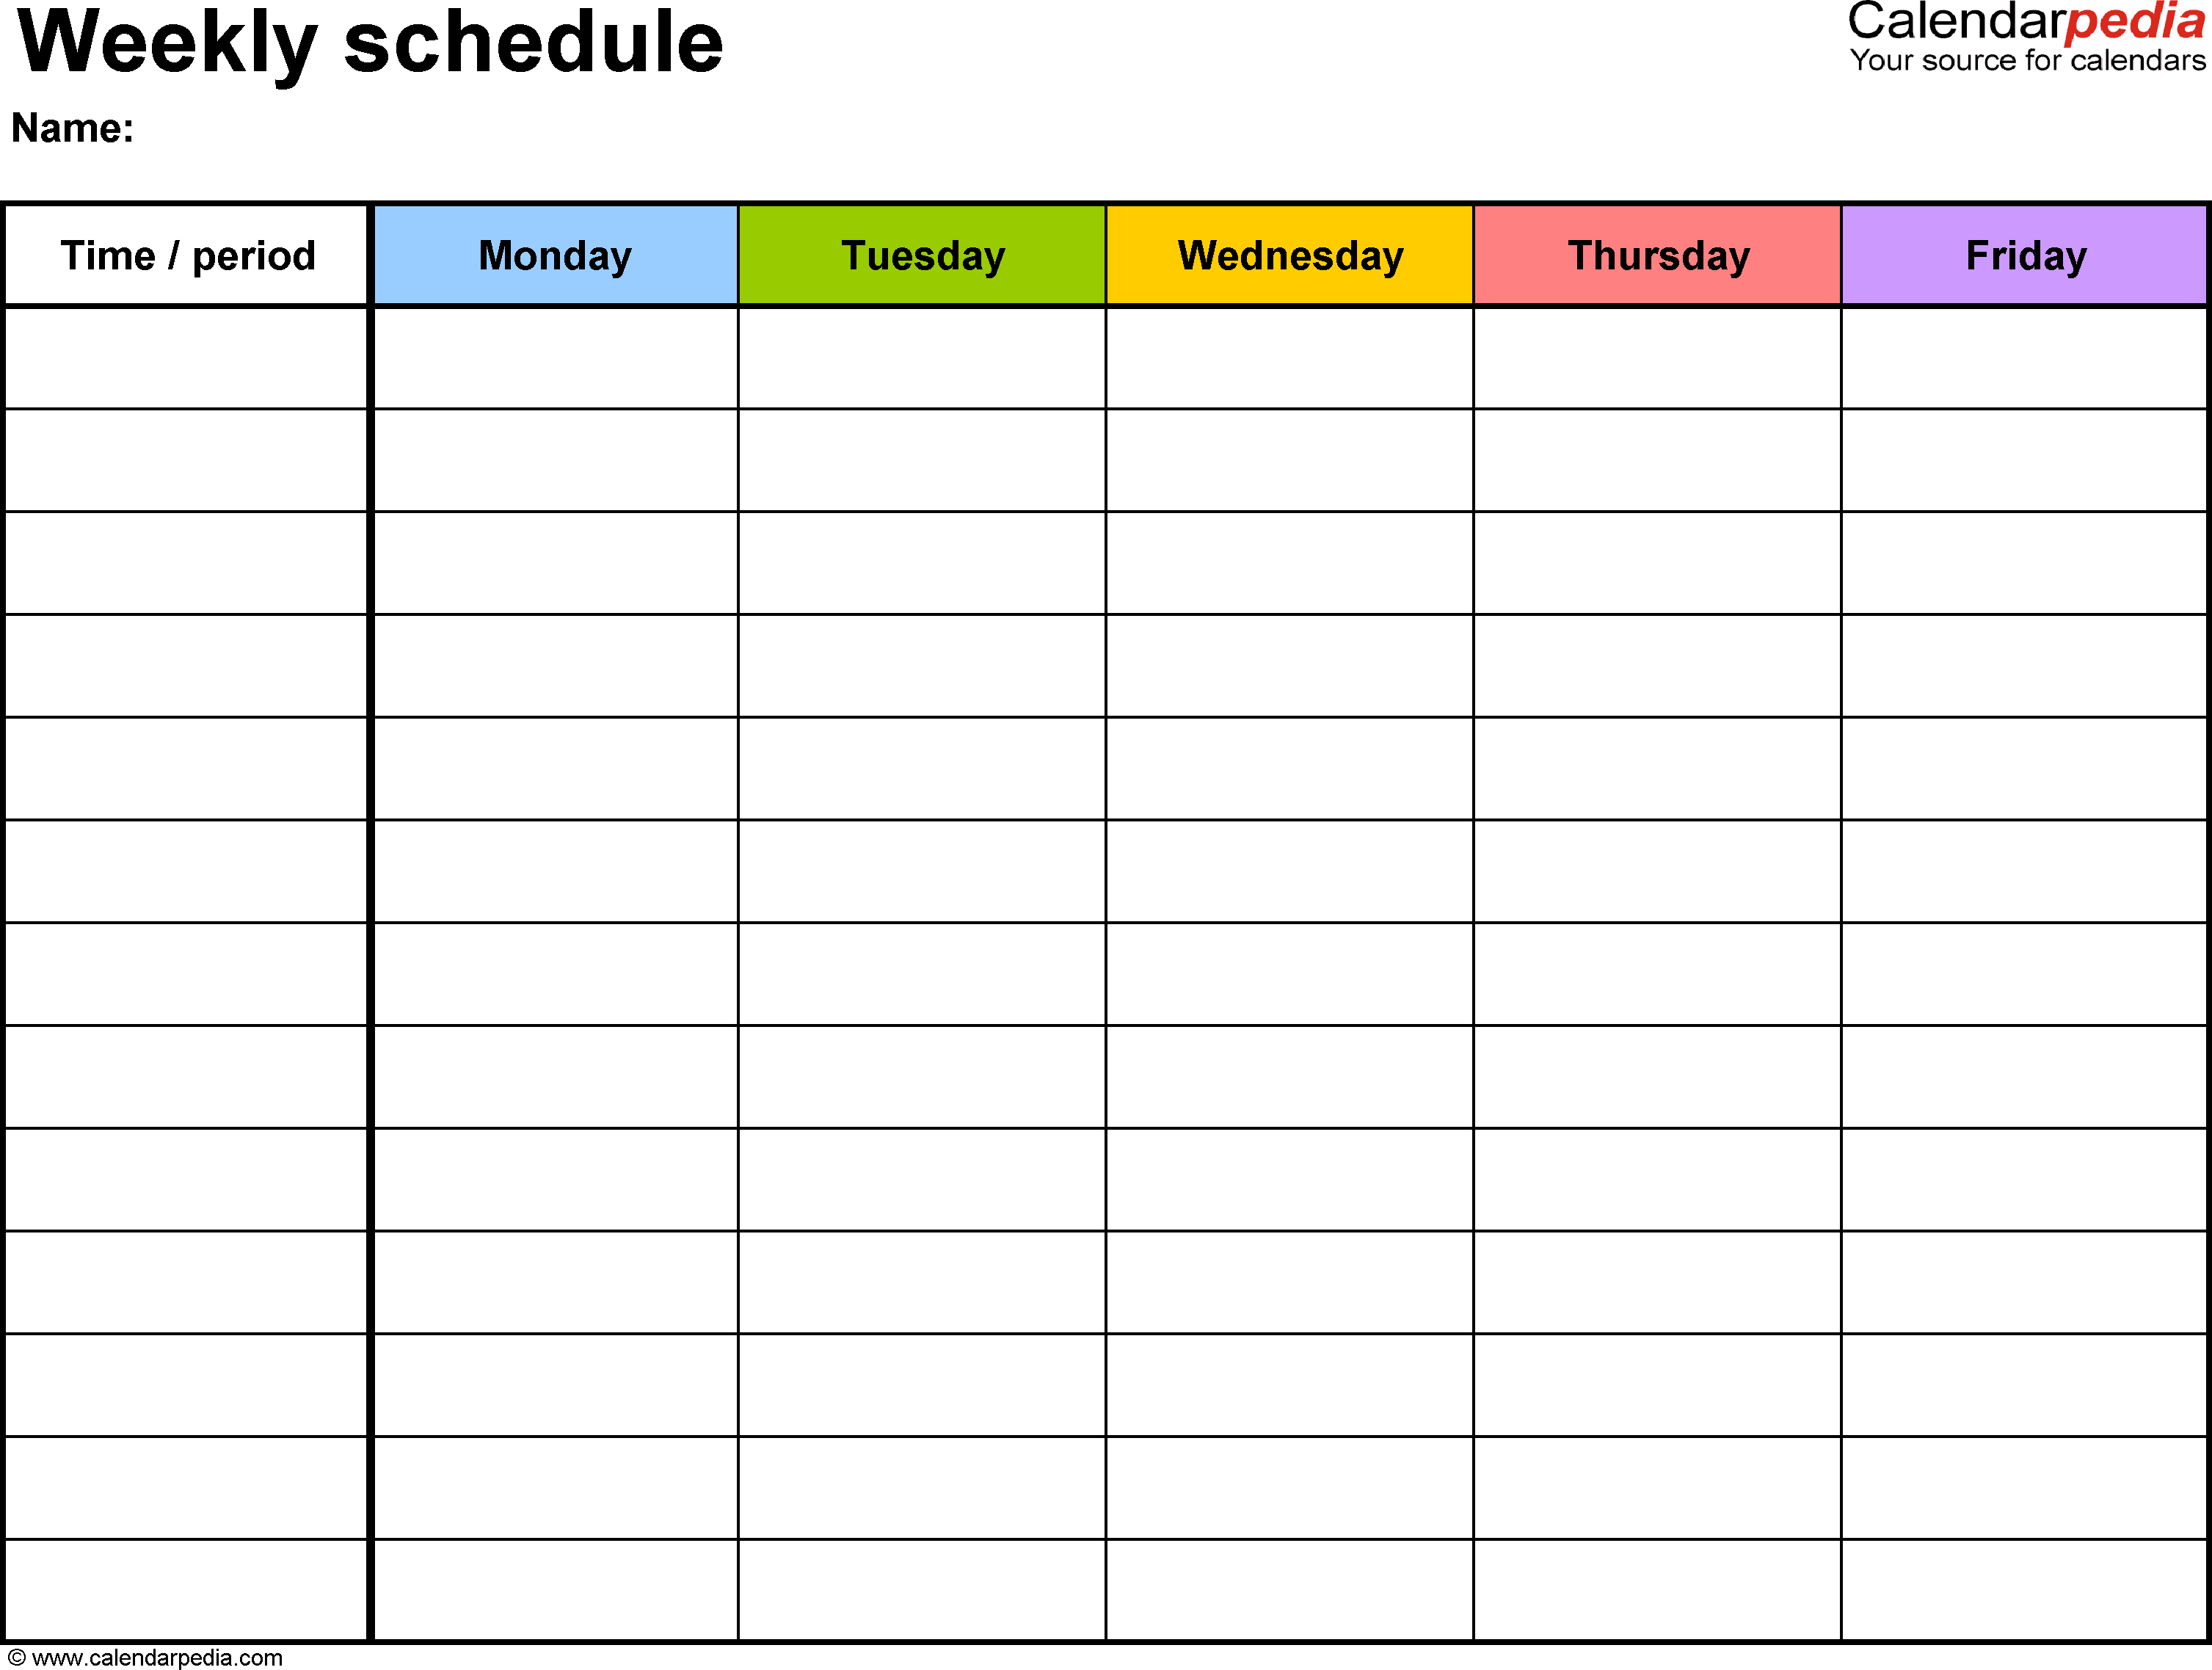 Weekly Schedule Template For Word Version 1: Landscape, 1 Mnday To Friday Calendar Templates